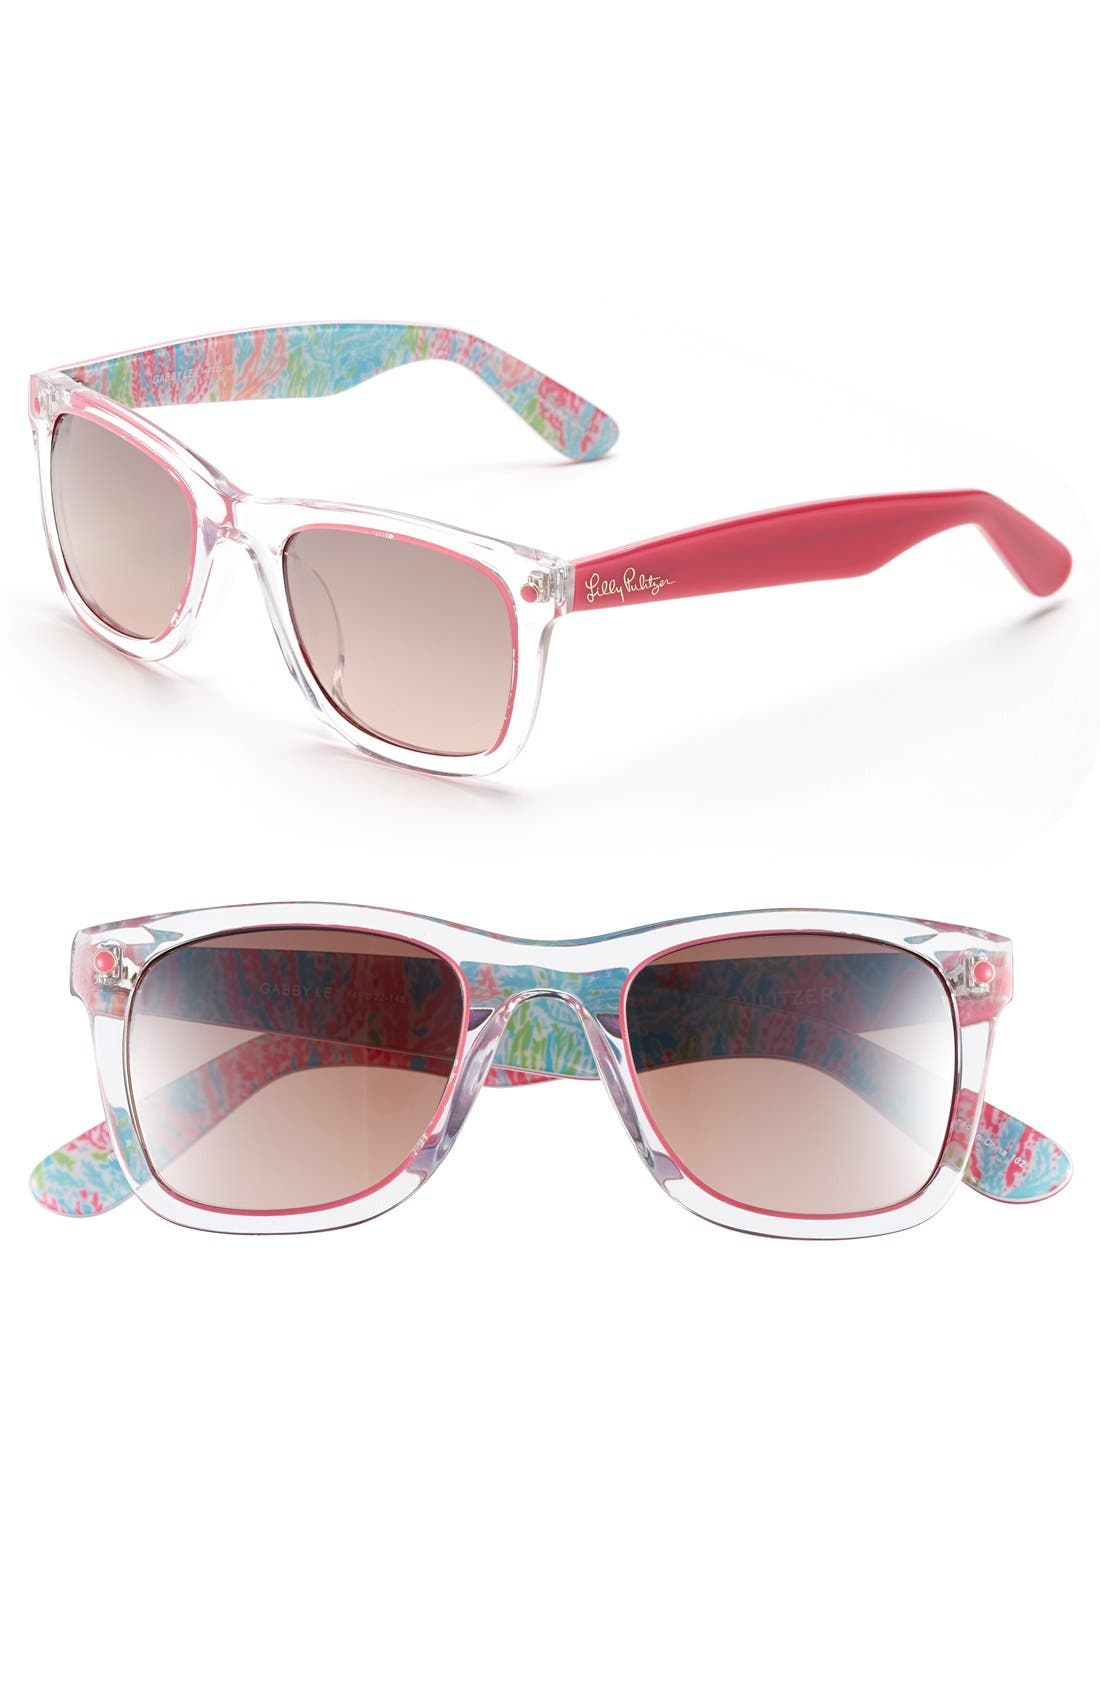 Main Image - Lilly Pulitzer® 'Gabby' 49mm Retro Sunglasses